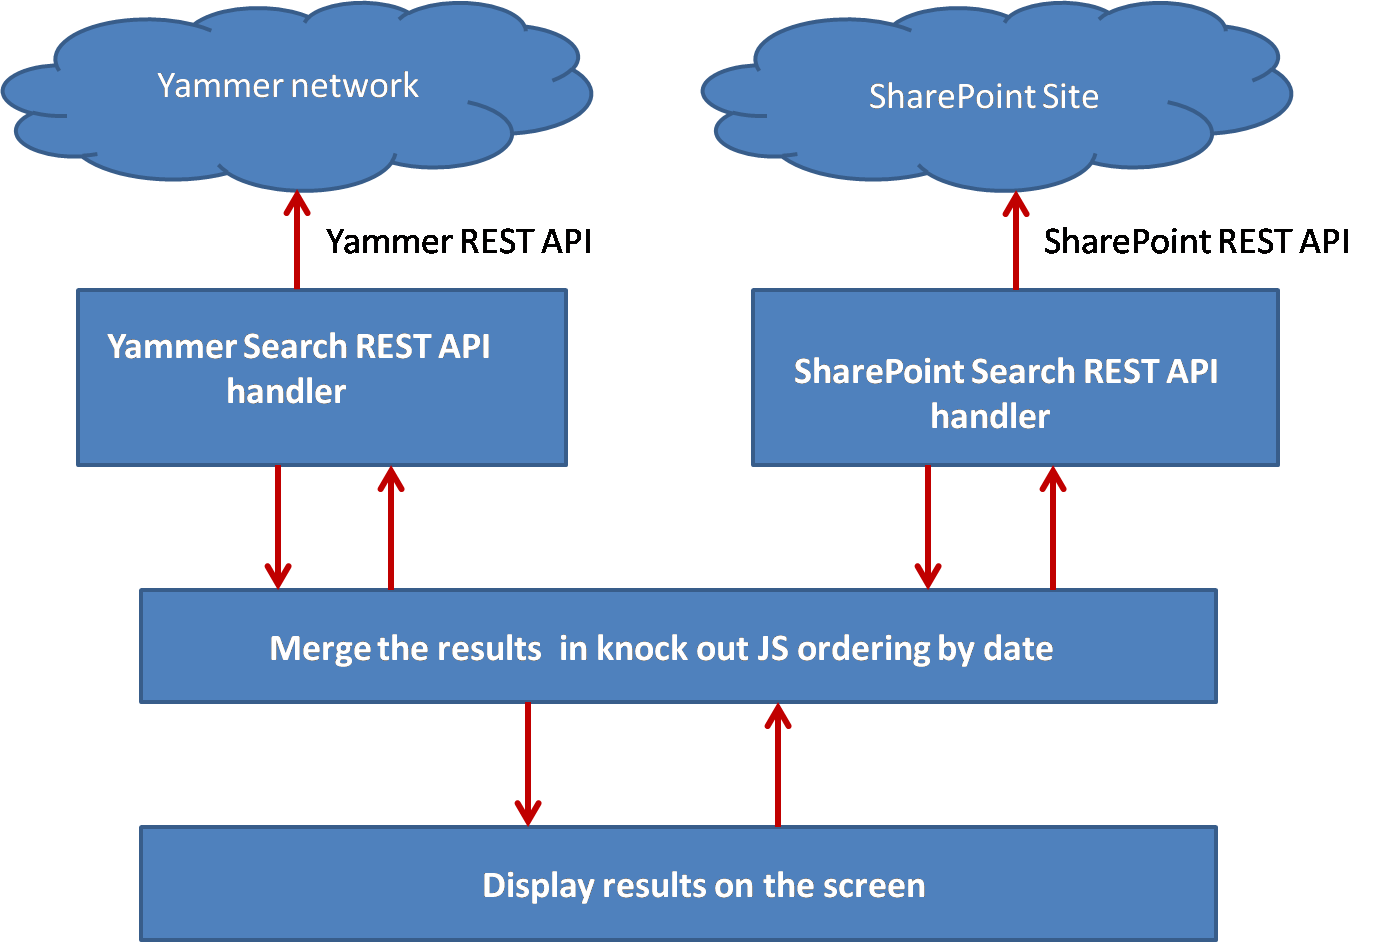 Sharepoint 2013 Components Diagram Chevy Turn Signal And Yammer How To Integrate Search With Let S Take Look At Each Box Of This Component